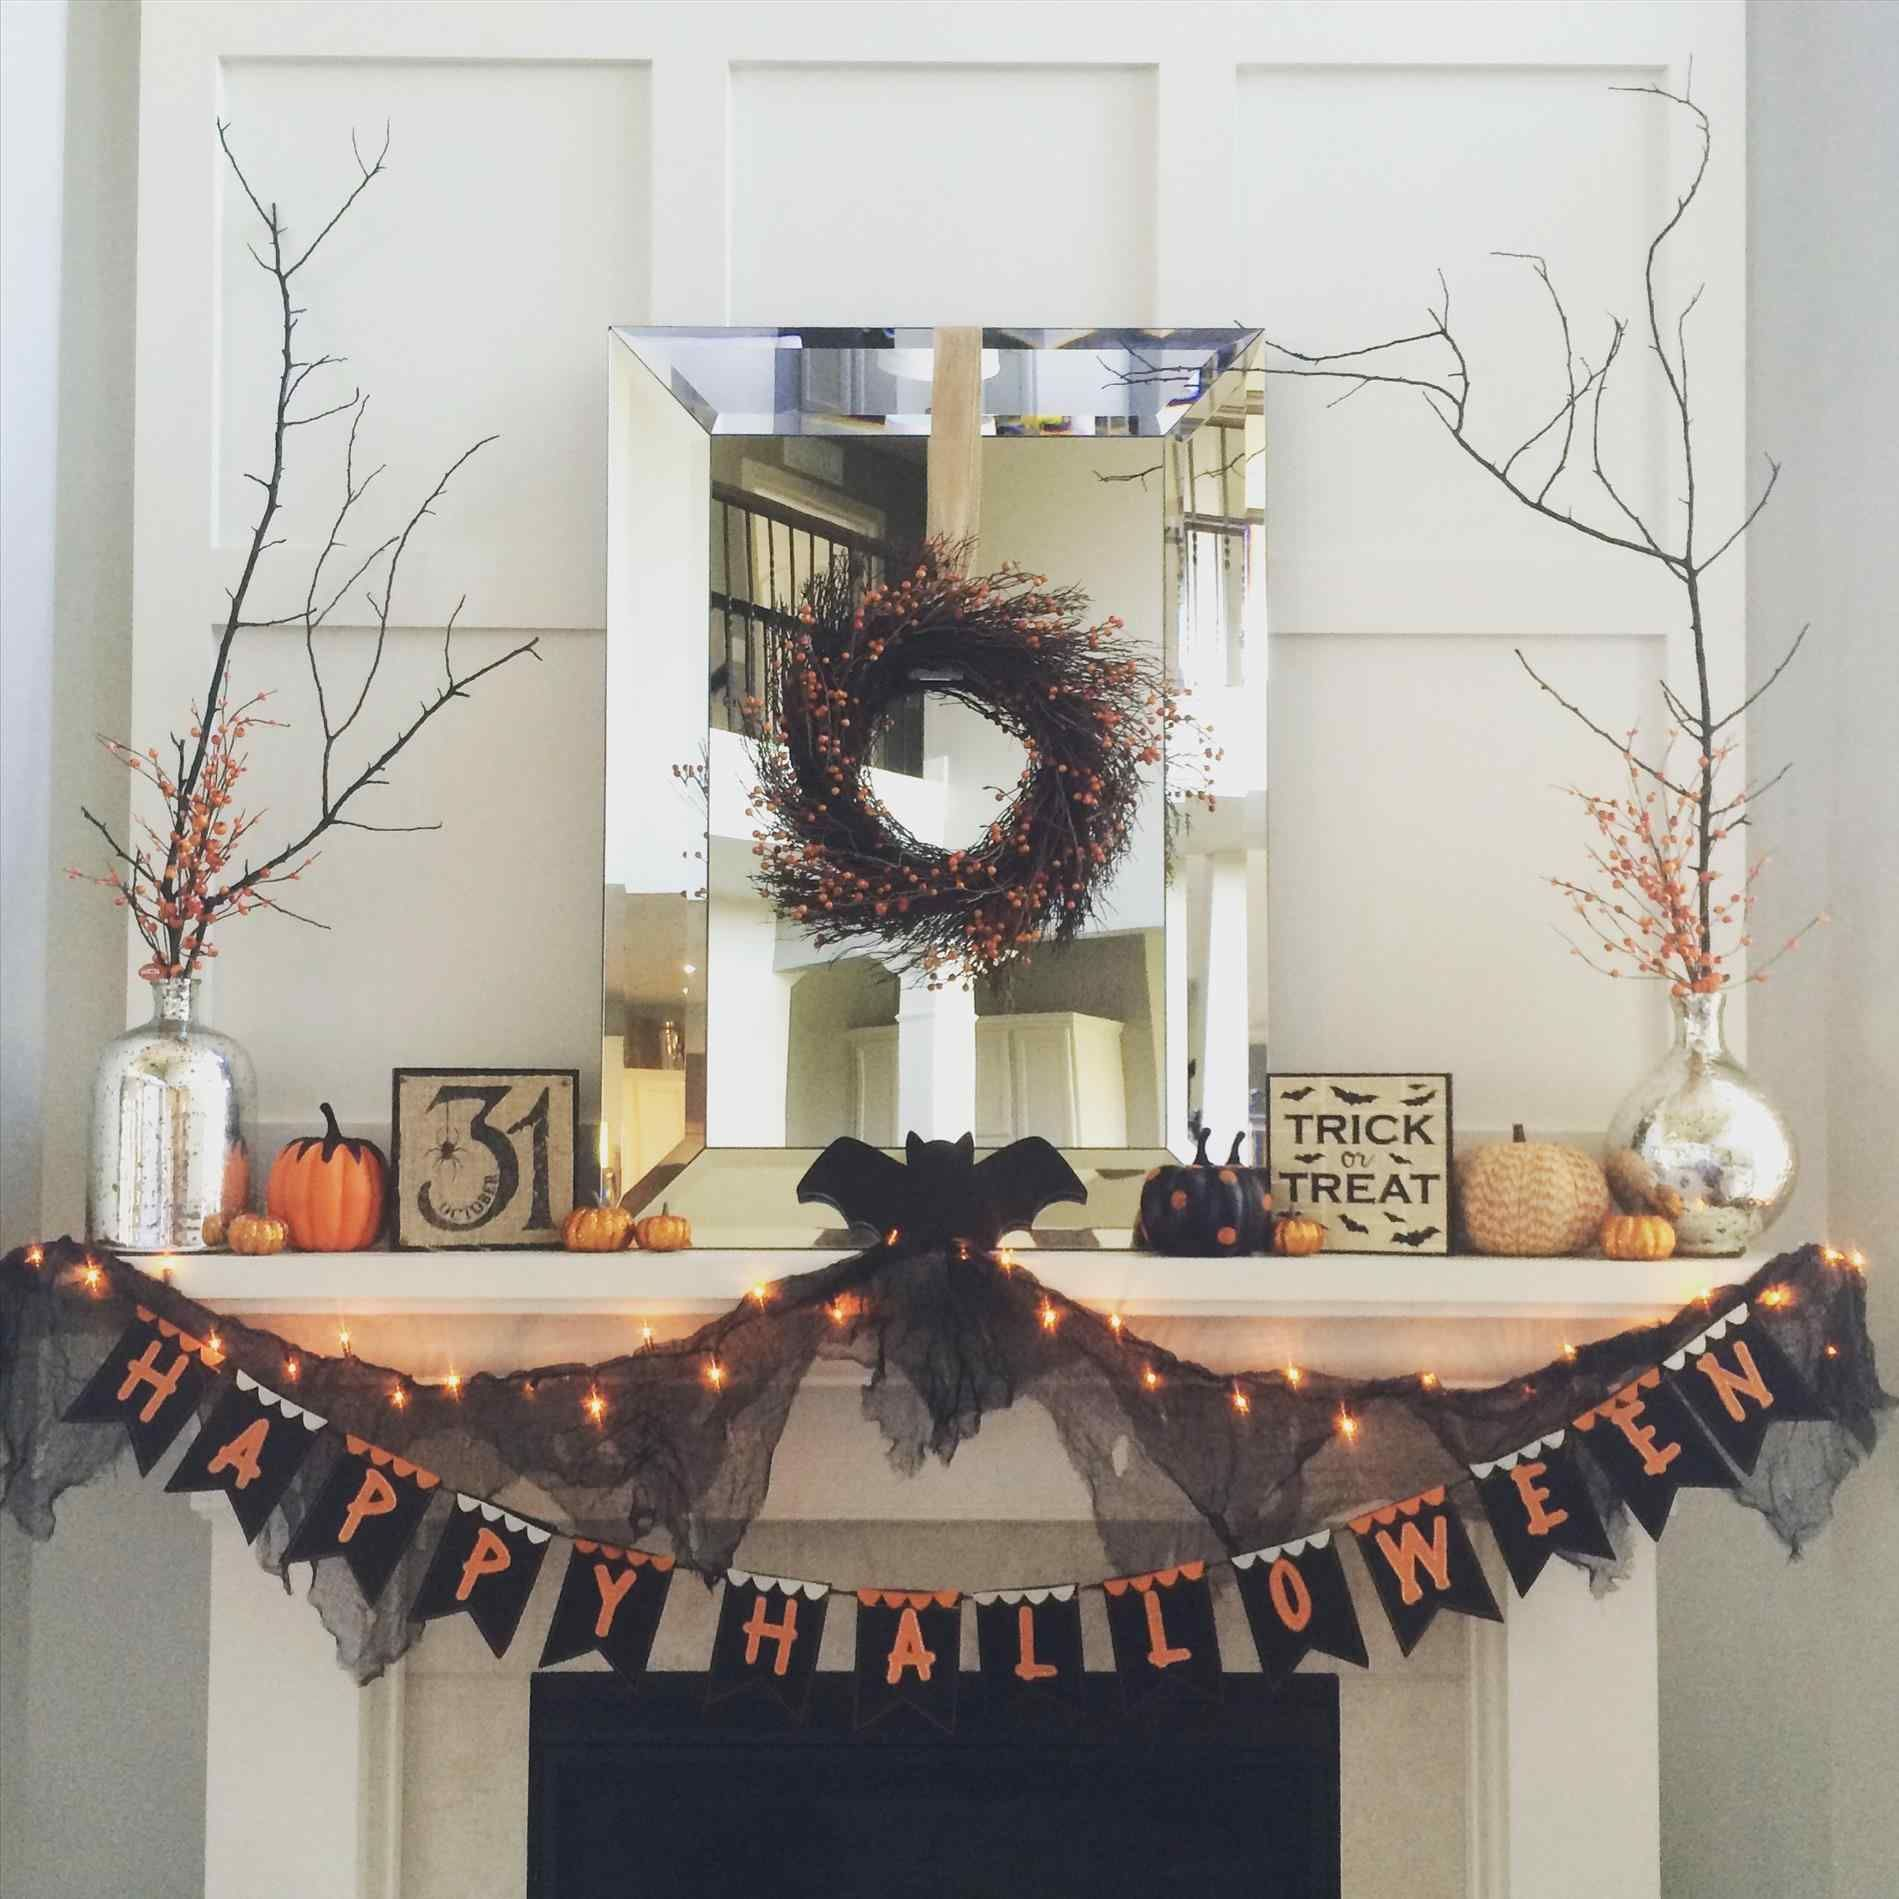 Top 9 Classy Halloween Decorations Ideas for Amazing Halloween